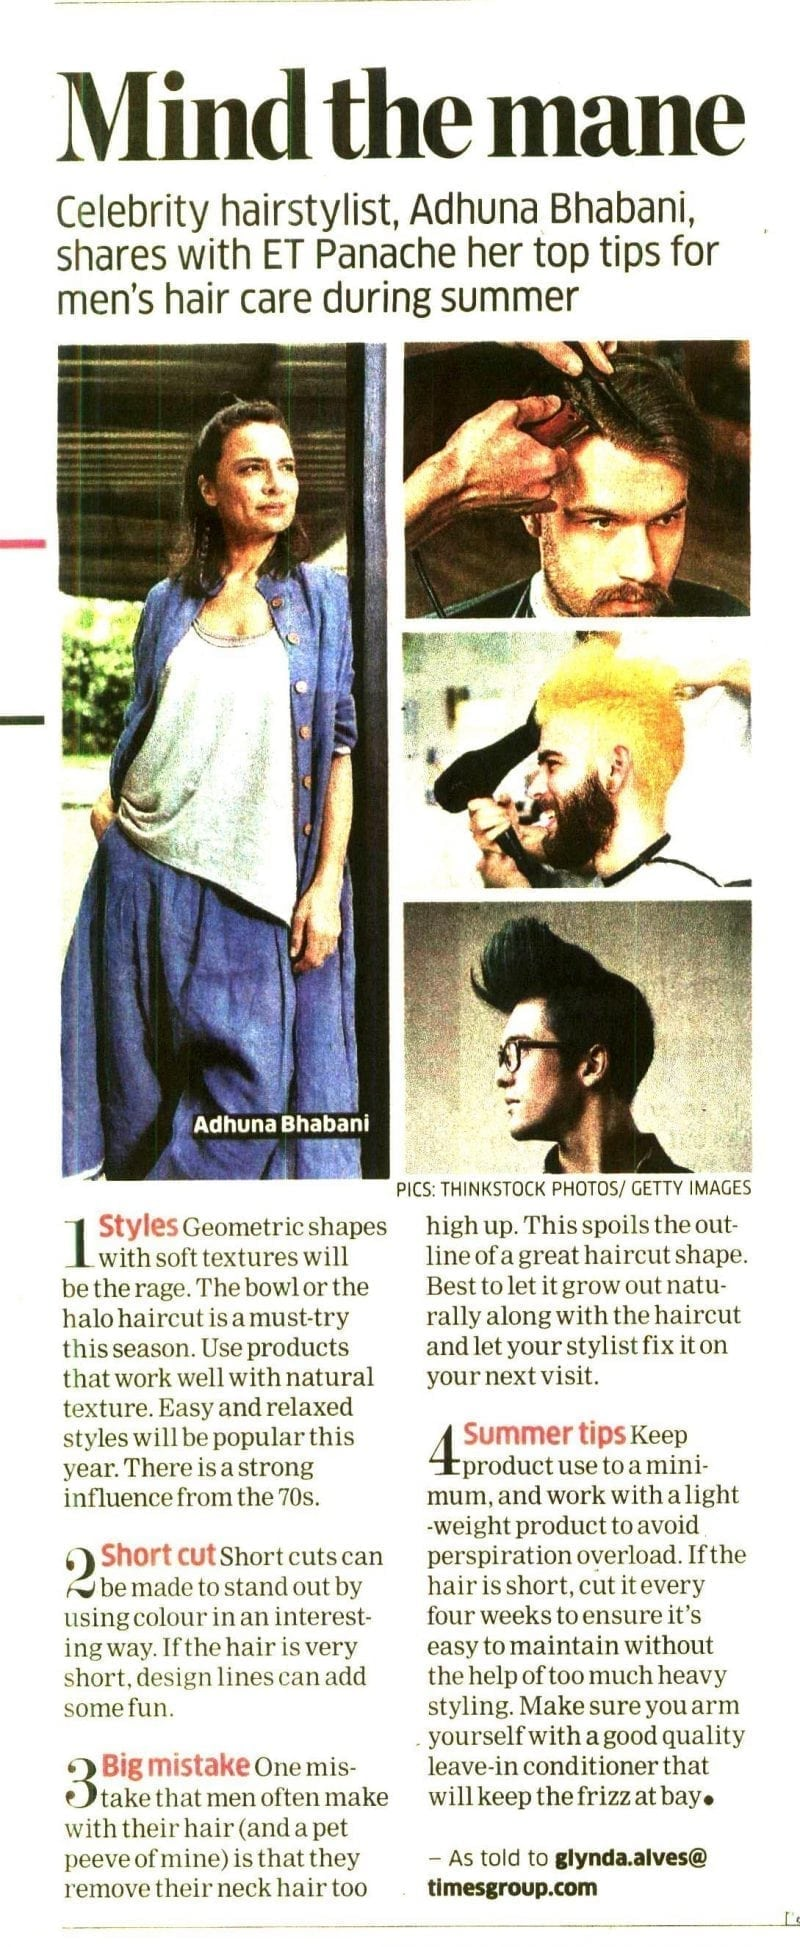 ET Panache, Pg 2, 27th April